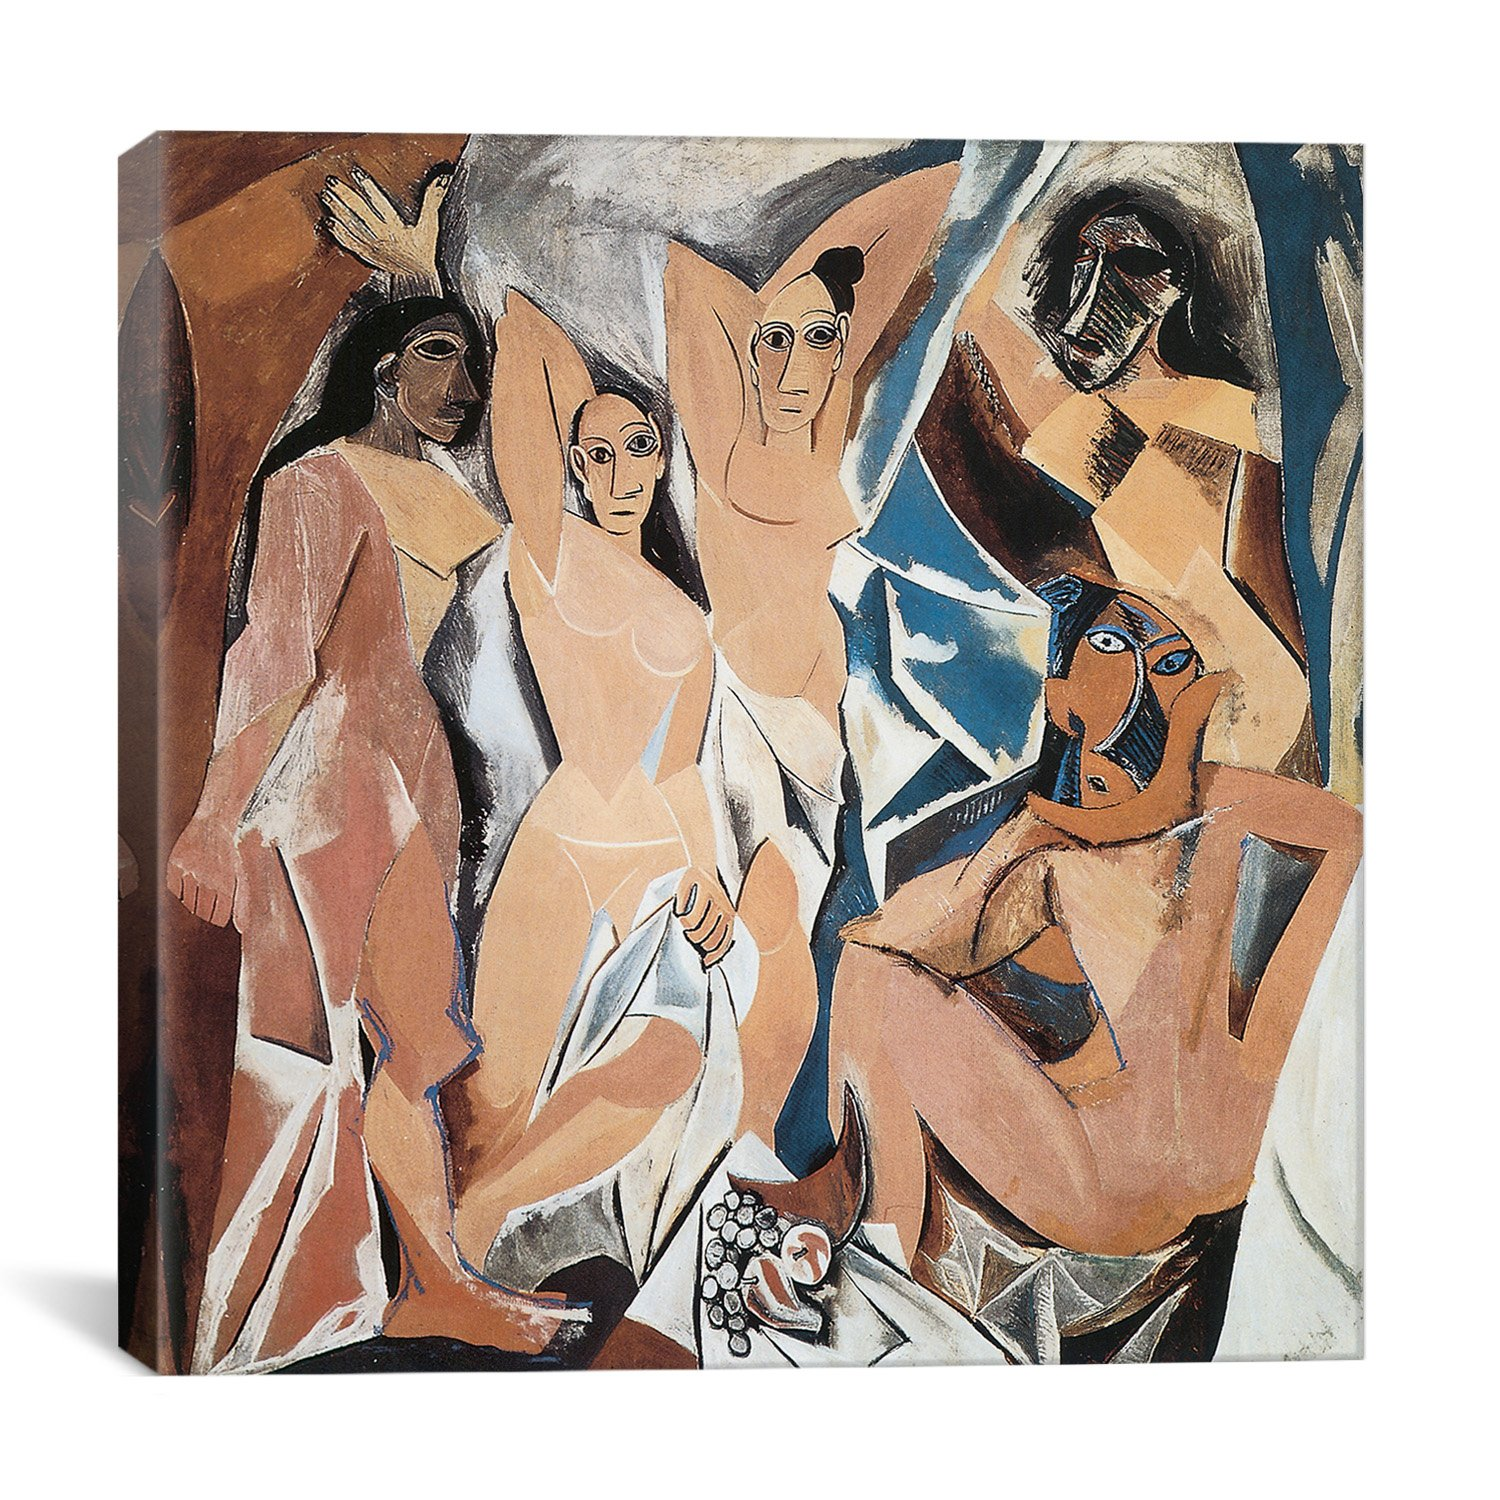 iCanvasART 1708 Les Demoiselles D'Avignon Canvas Print by Pablo Picasso, 37 by 37-Inch, 0.75-Inch Deep